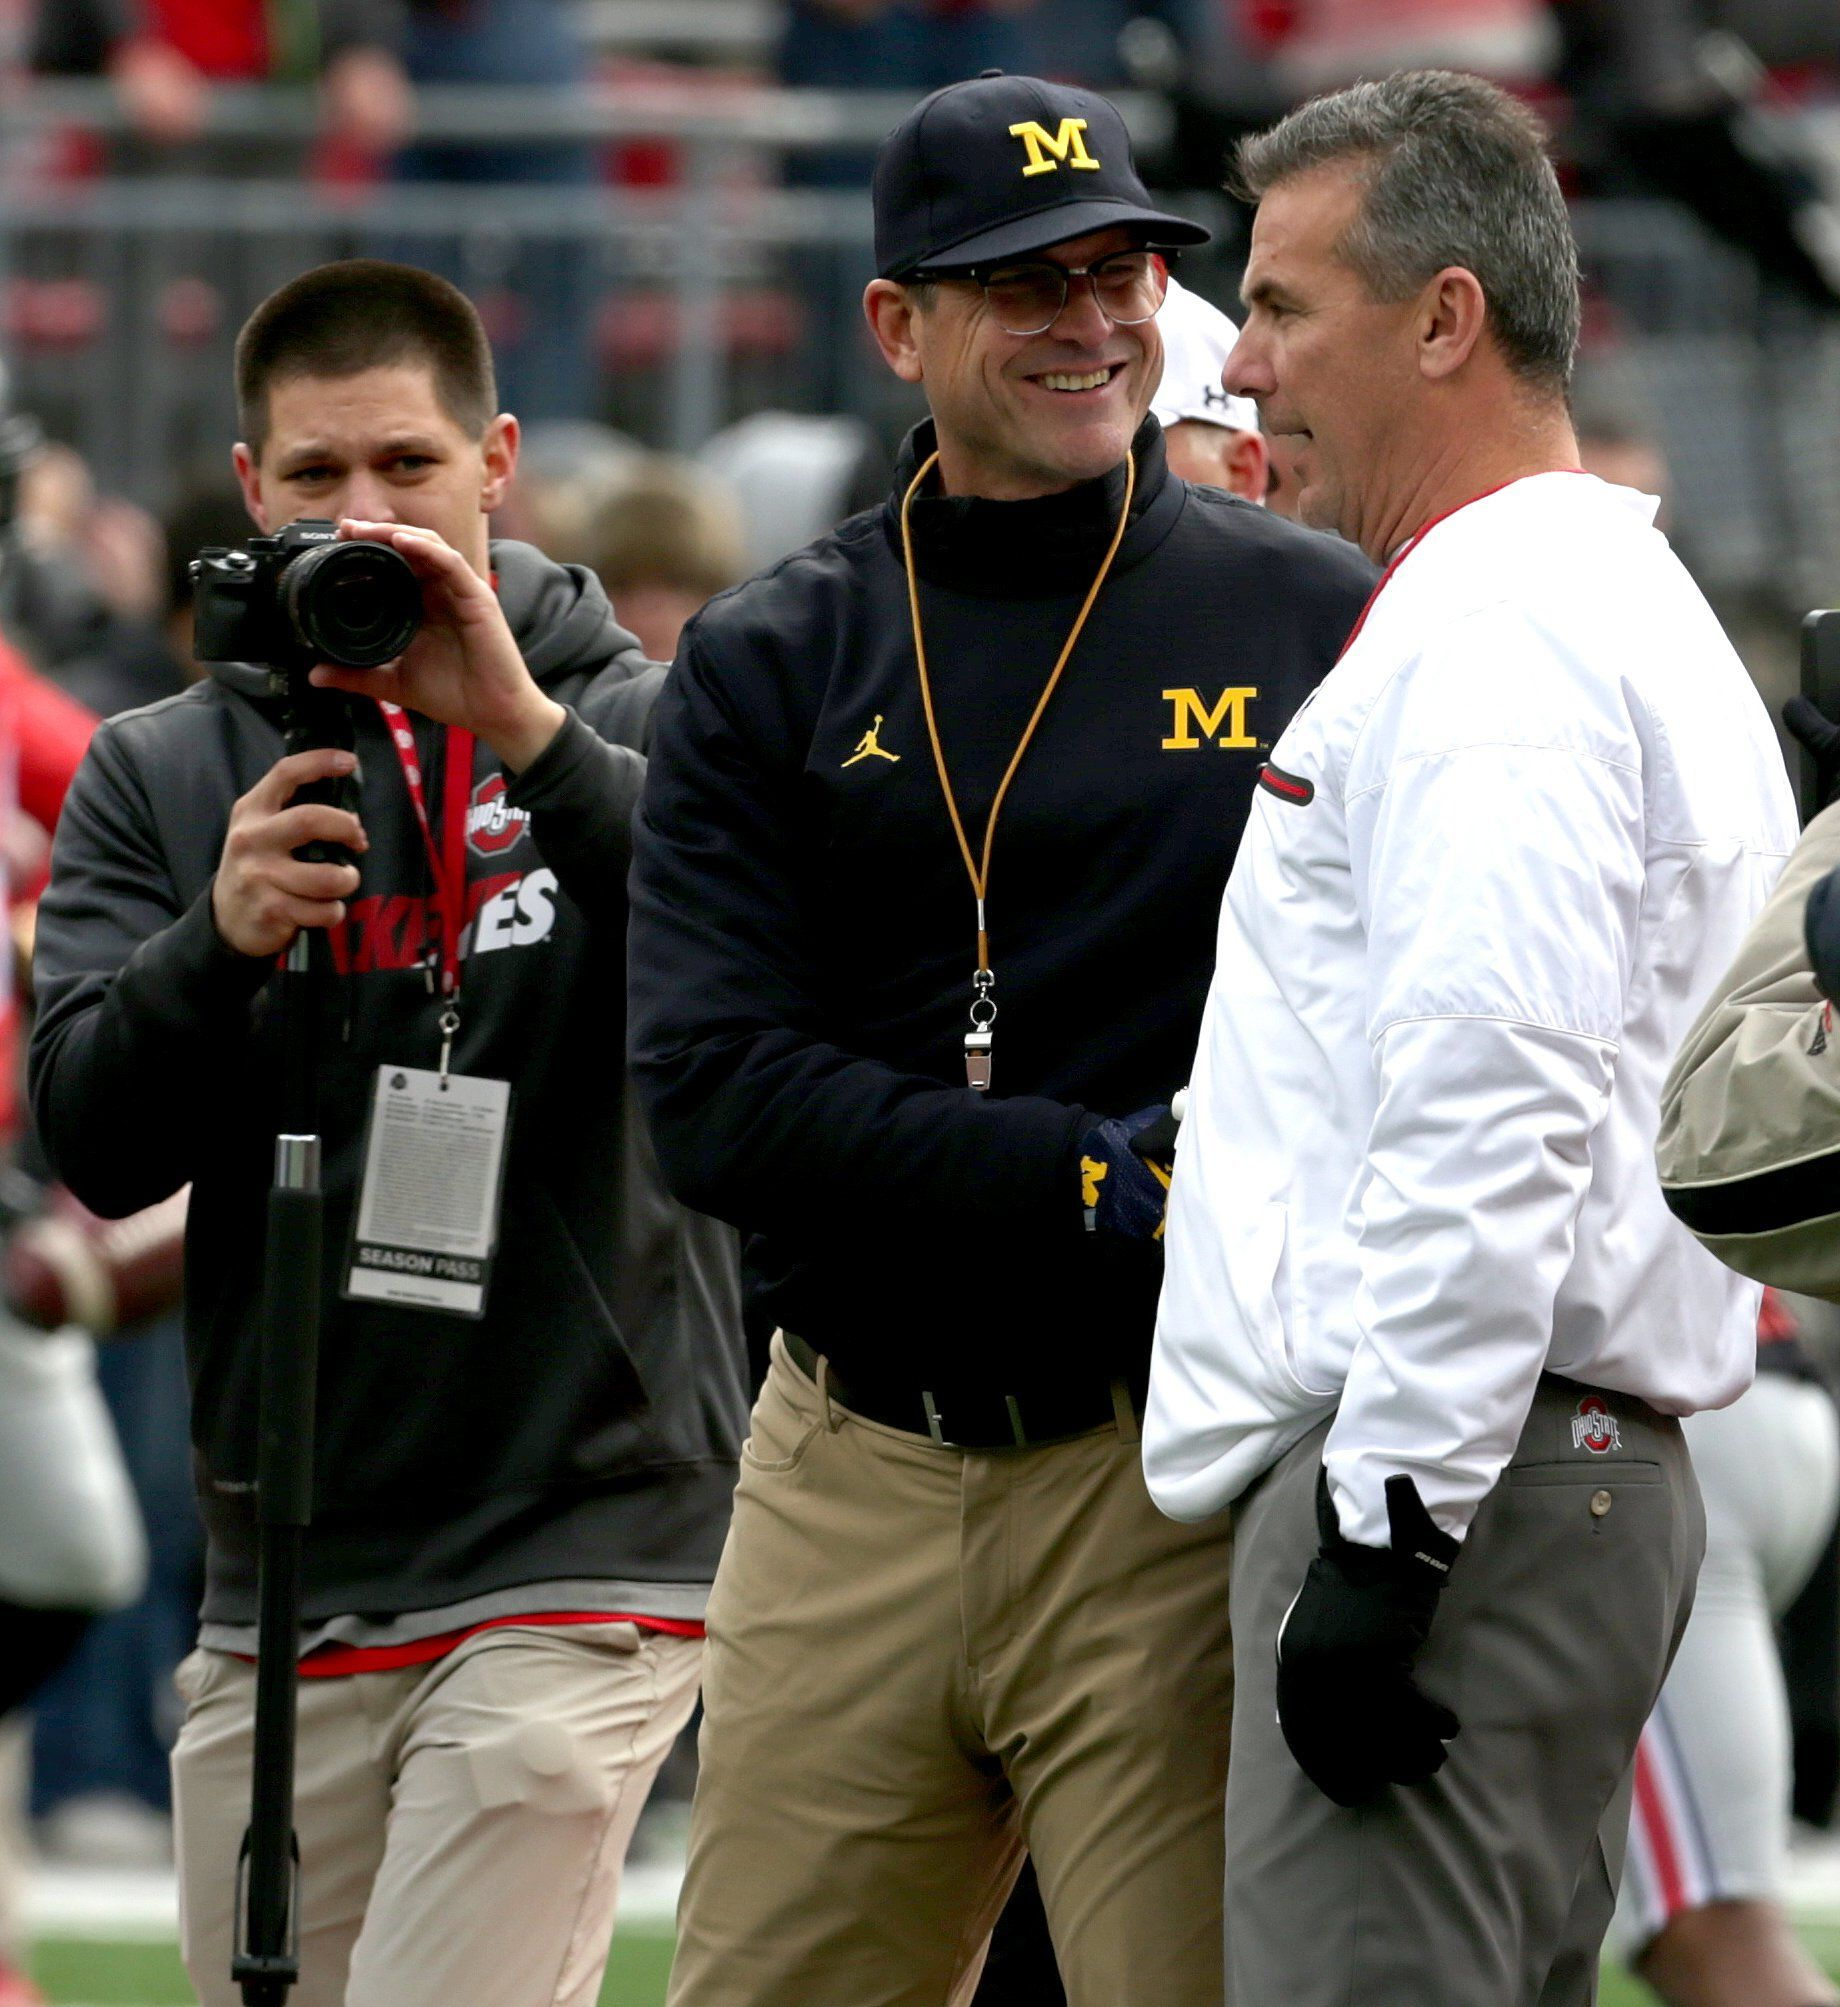 Jim Harbaugh and Urban Meyer shake hands before the game at Ohio Stadium in Columbus, Ohio on Nov. 26, 2016.